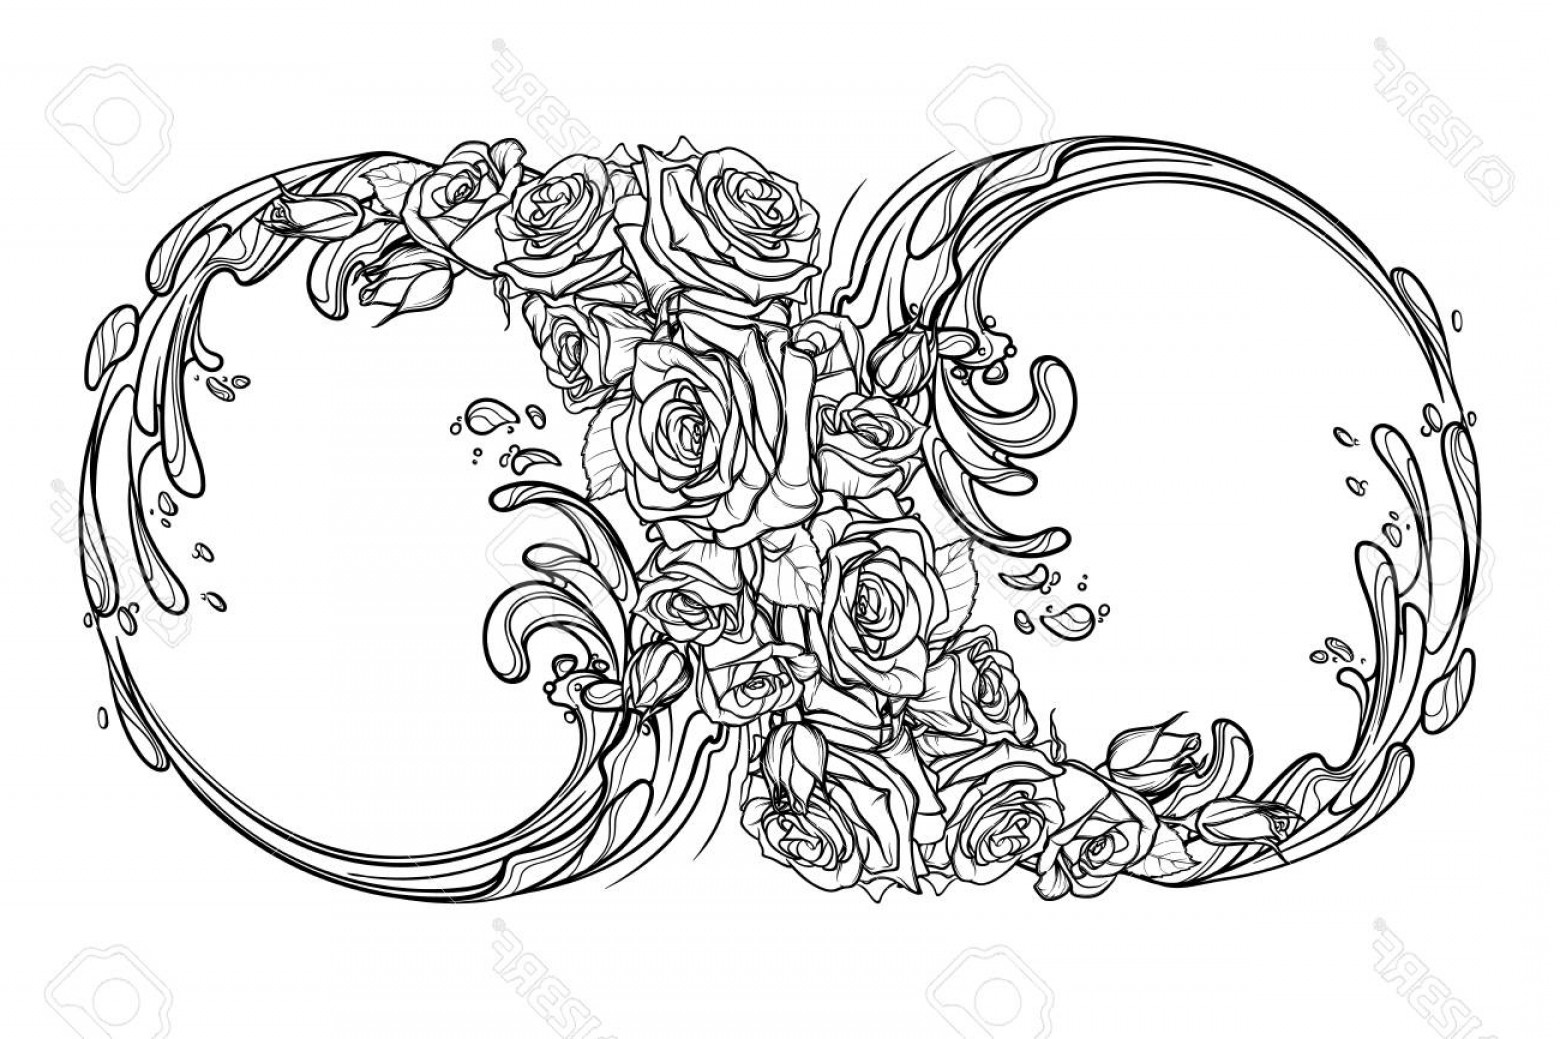 Decorative Infinity Symbol Vector: Photostock Vector Sign Of The Eternity Or Infinity Artistic Decorative Interpretation Of The Mathematical Symbol With